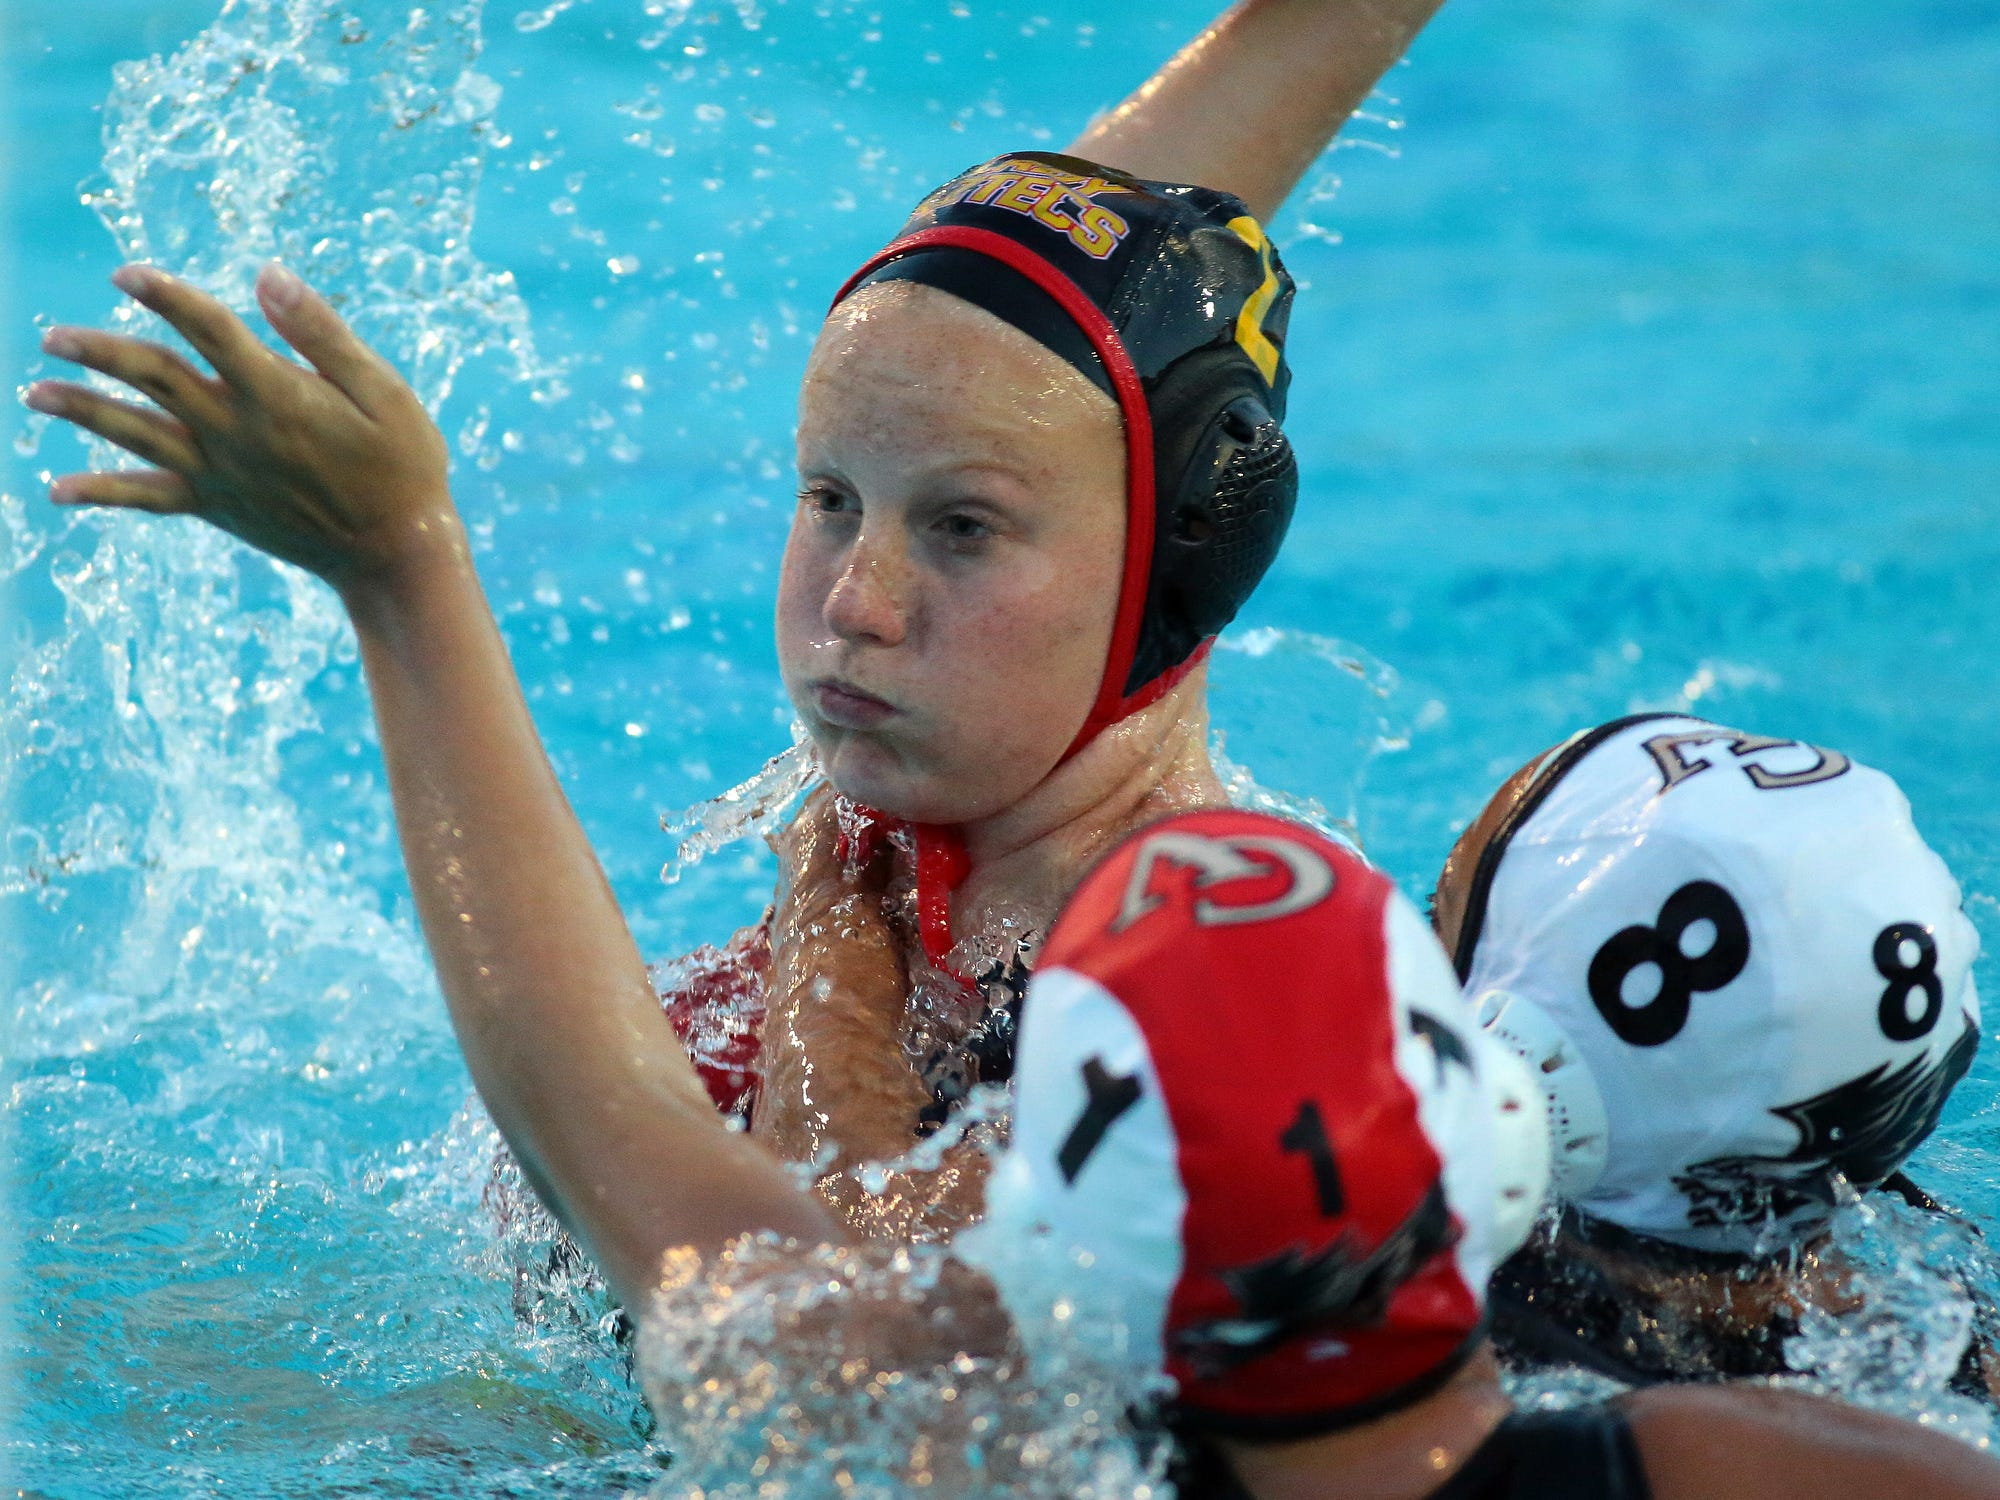 Sarah Nichols of Palm Desert (2) is able to make a shot and score one of her four goals while battling defensive pressure from Citrus Valley during Palm Desert's girls water polo playoff game in Palm Desert on Wednesday, February 18, 2015. Palm Desert won 14-4.